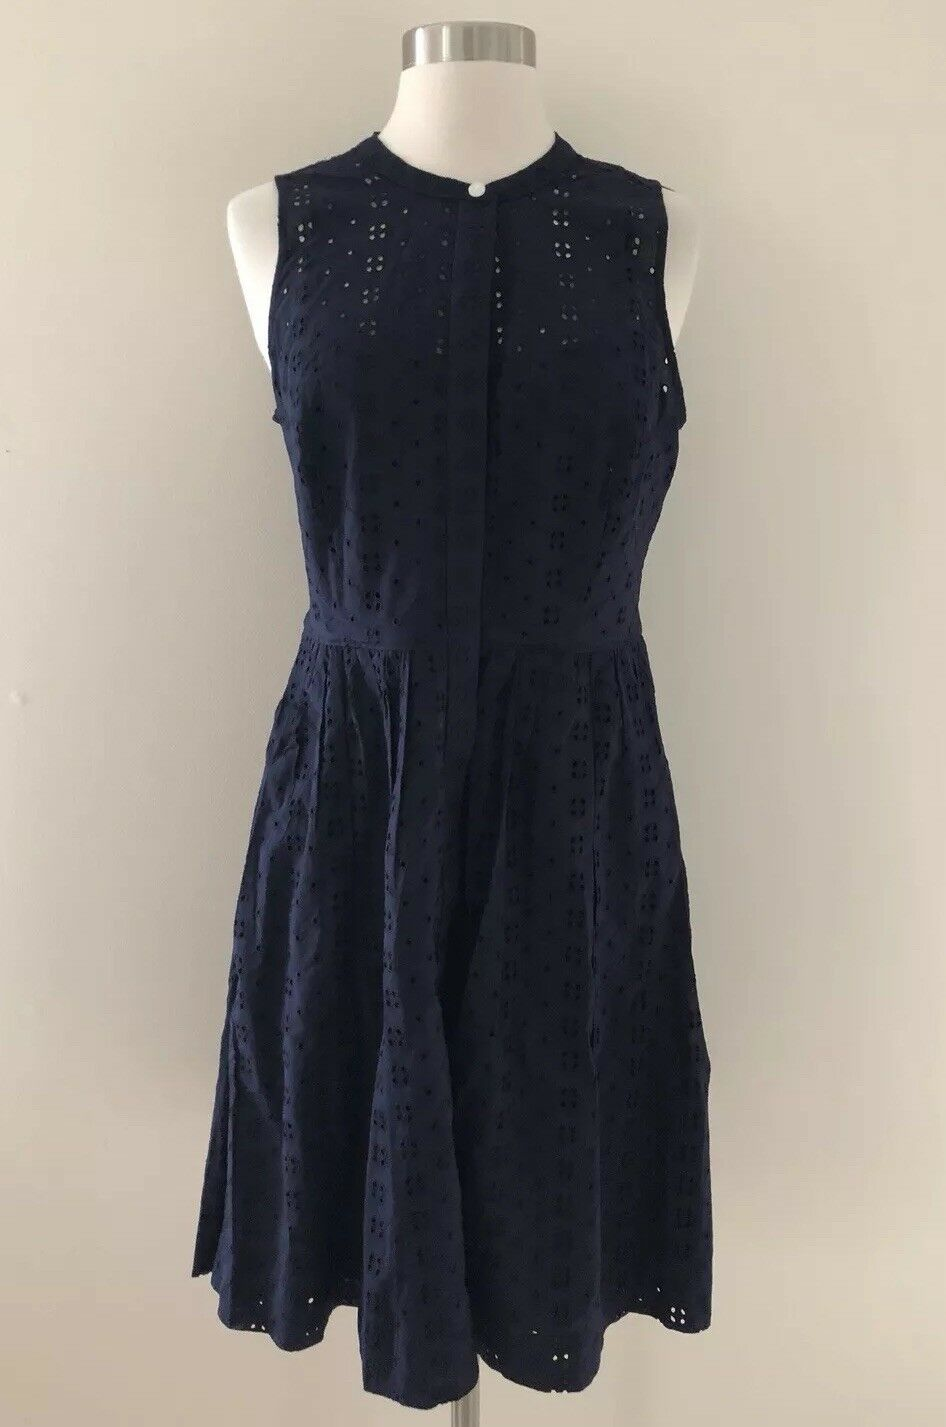 J.Crew Factory Eyelet shirtdress Navy Blau Größe S item  J0945  New